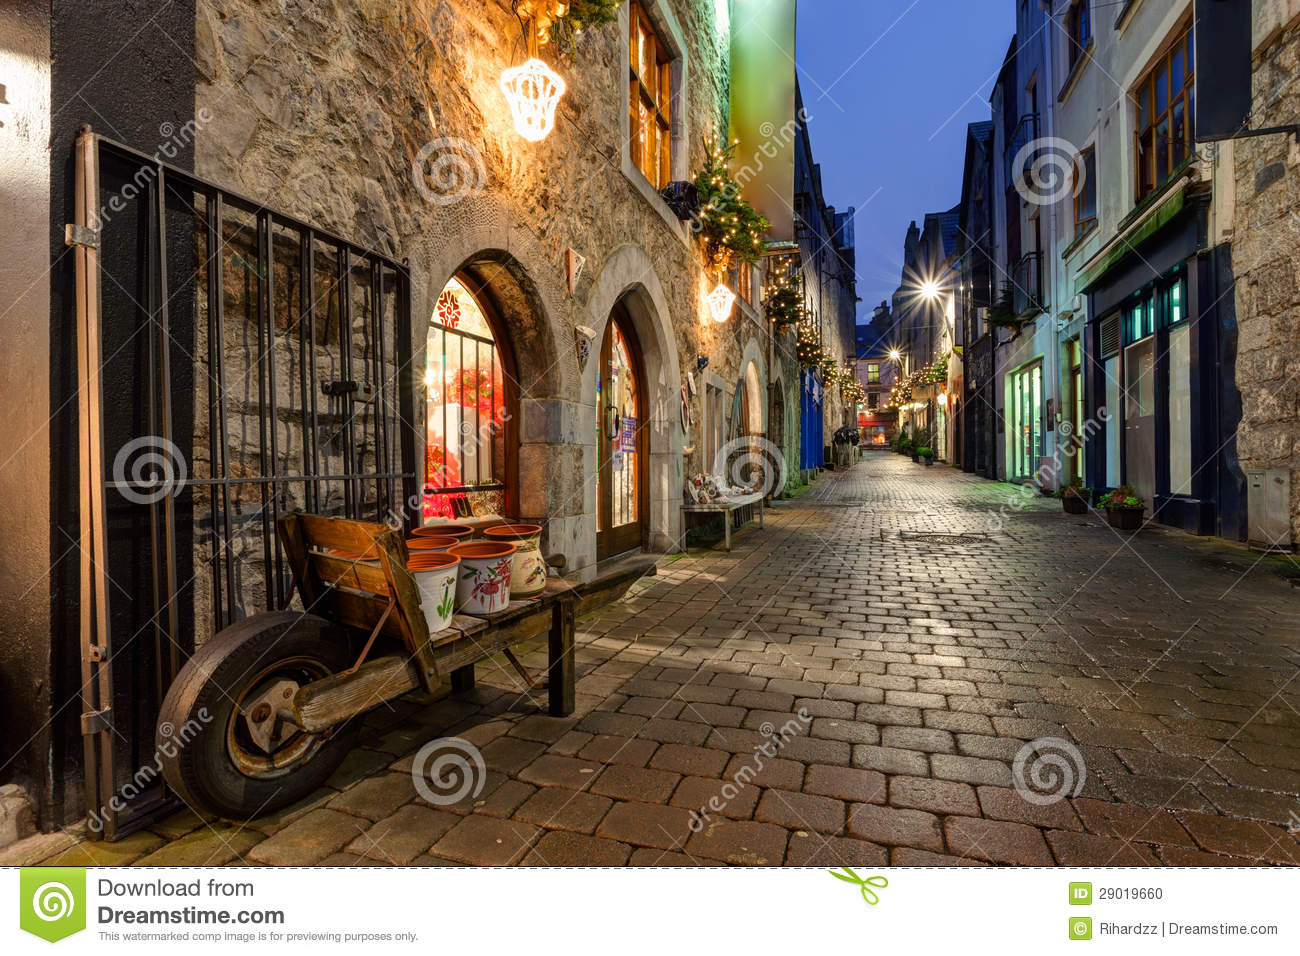 Barbie Hd Wallpapers Free Download Old City Street At Night Stock Photo Image Of City